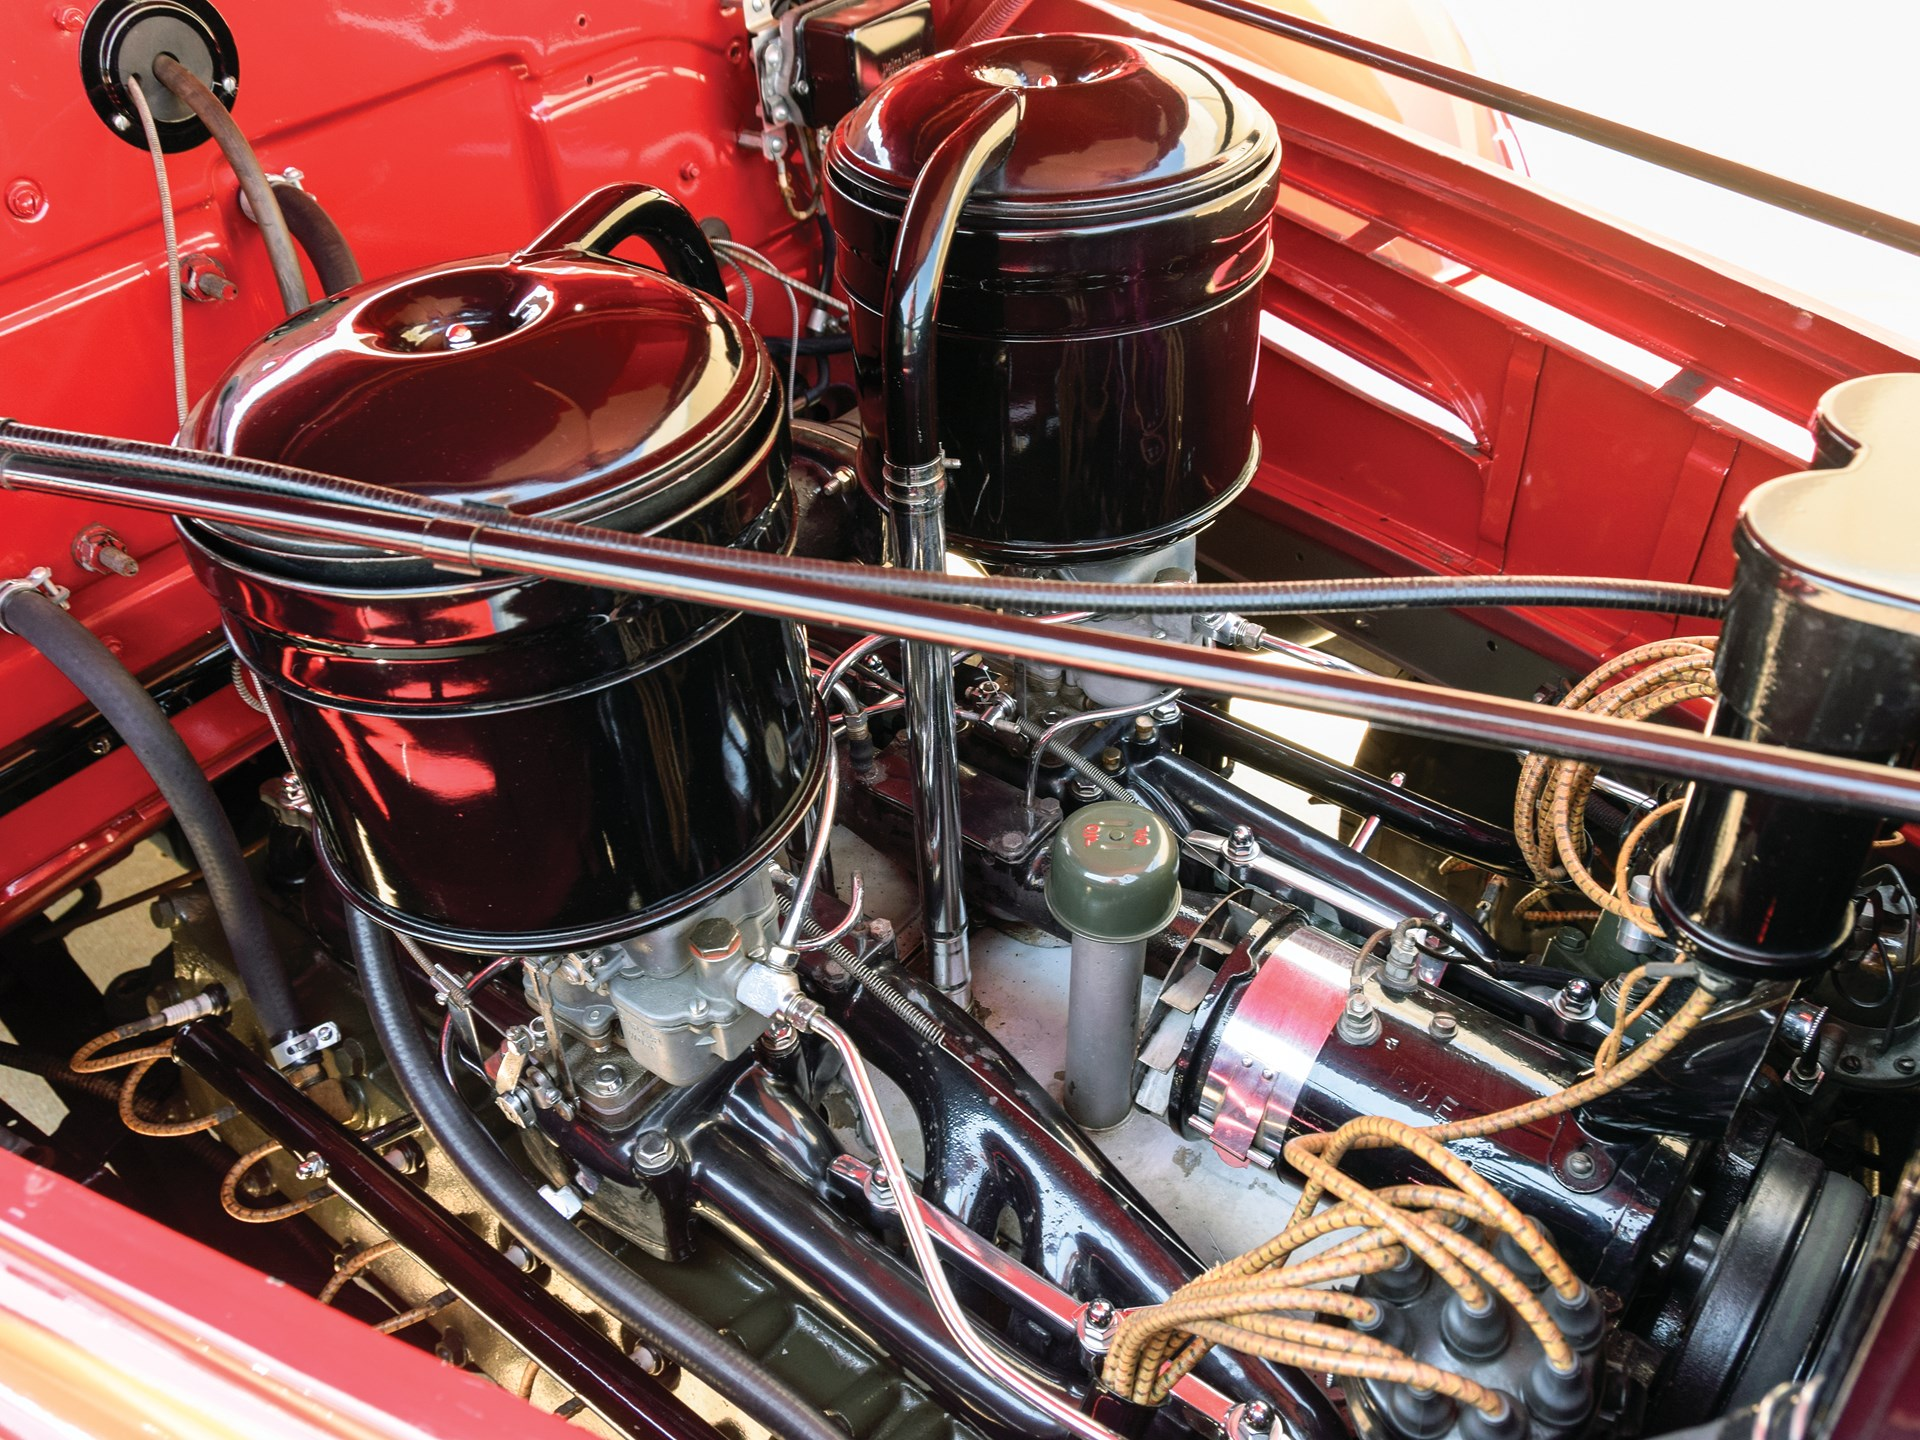 1938 Cadillac V-16 Convertible Coupe by Fleetwood